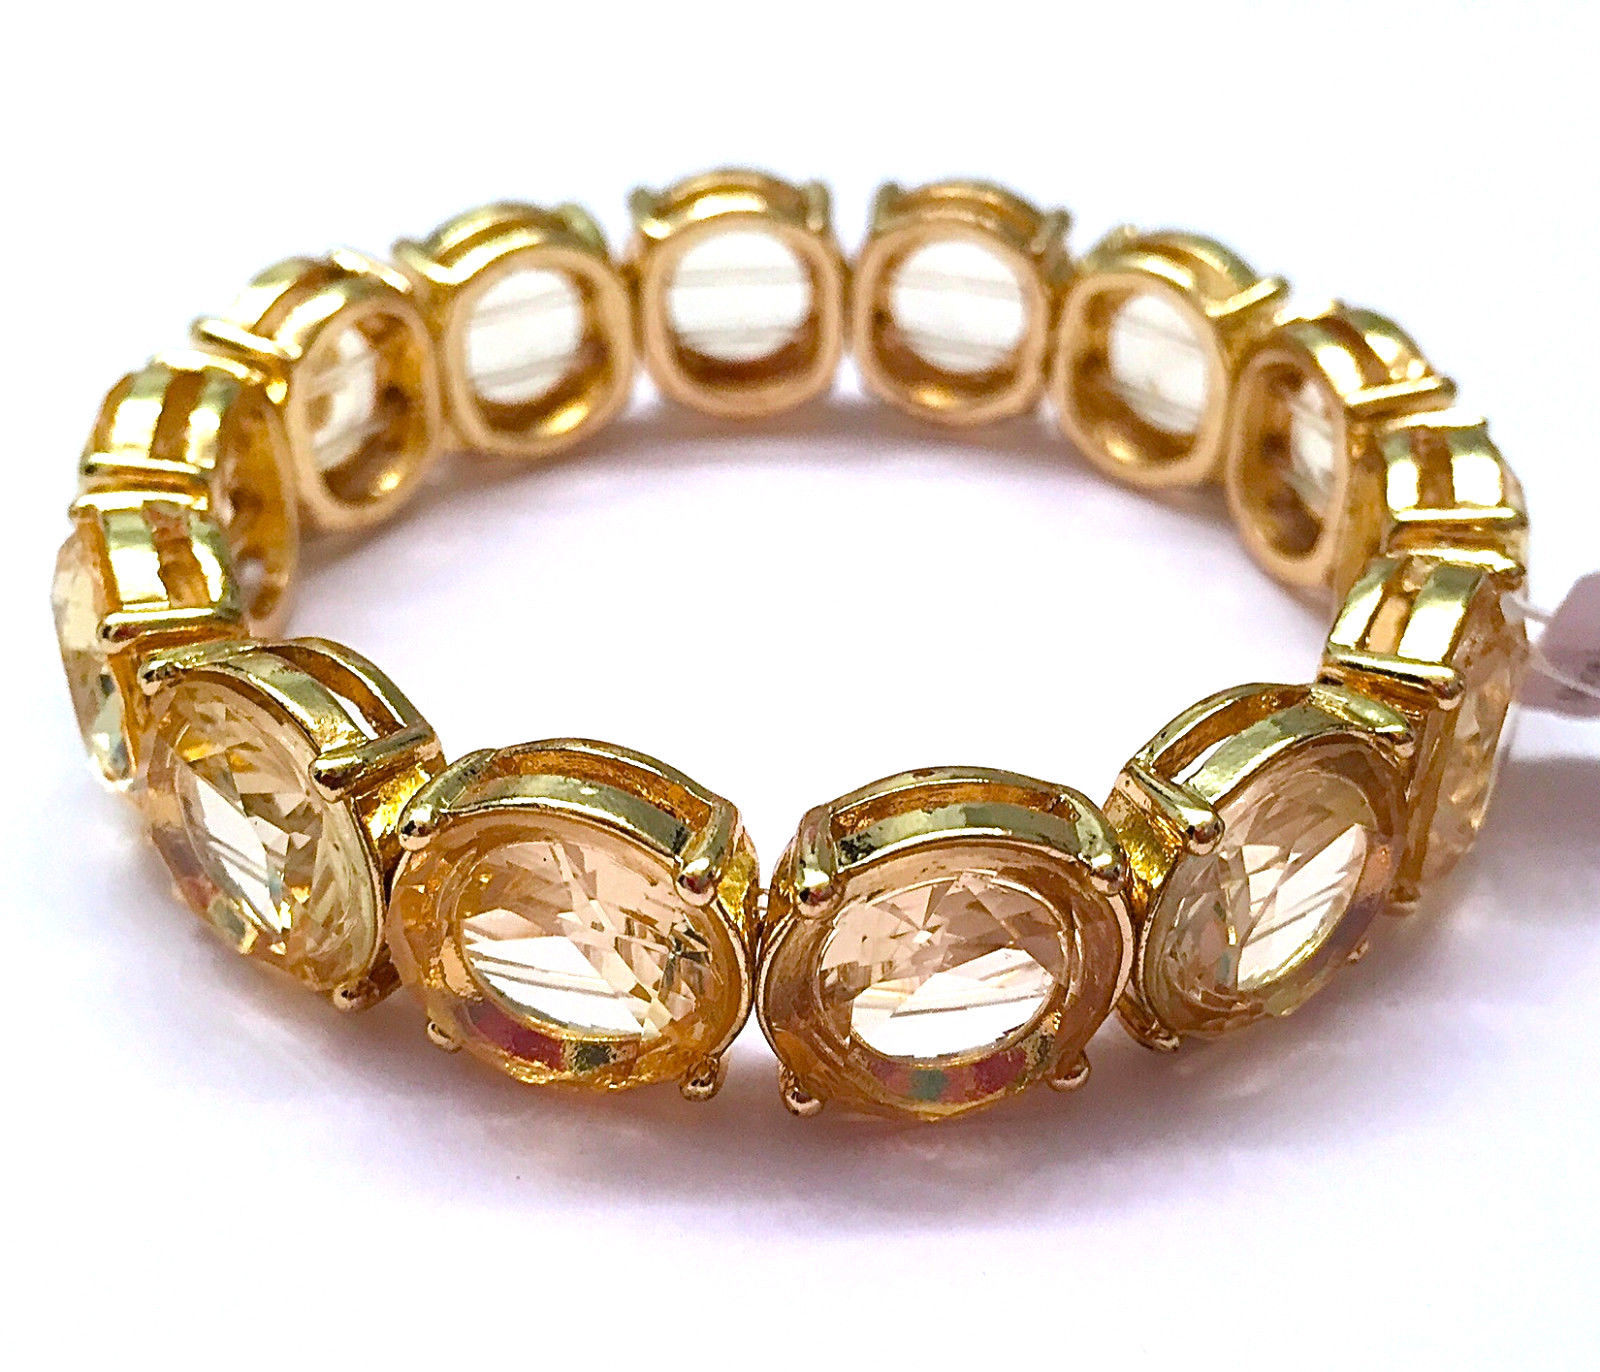 NWT $48 CHARTER CLUB CRYSTAL & GOLD COLORED STRETCH BRACELET